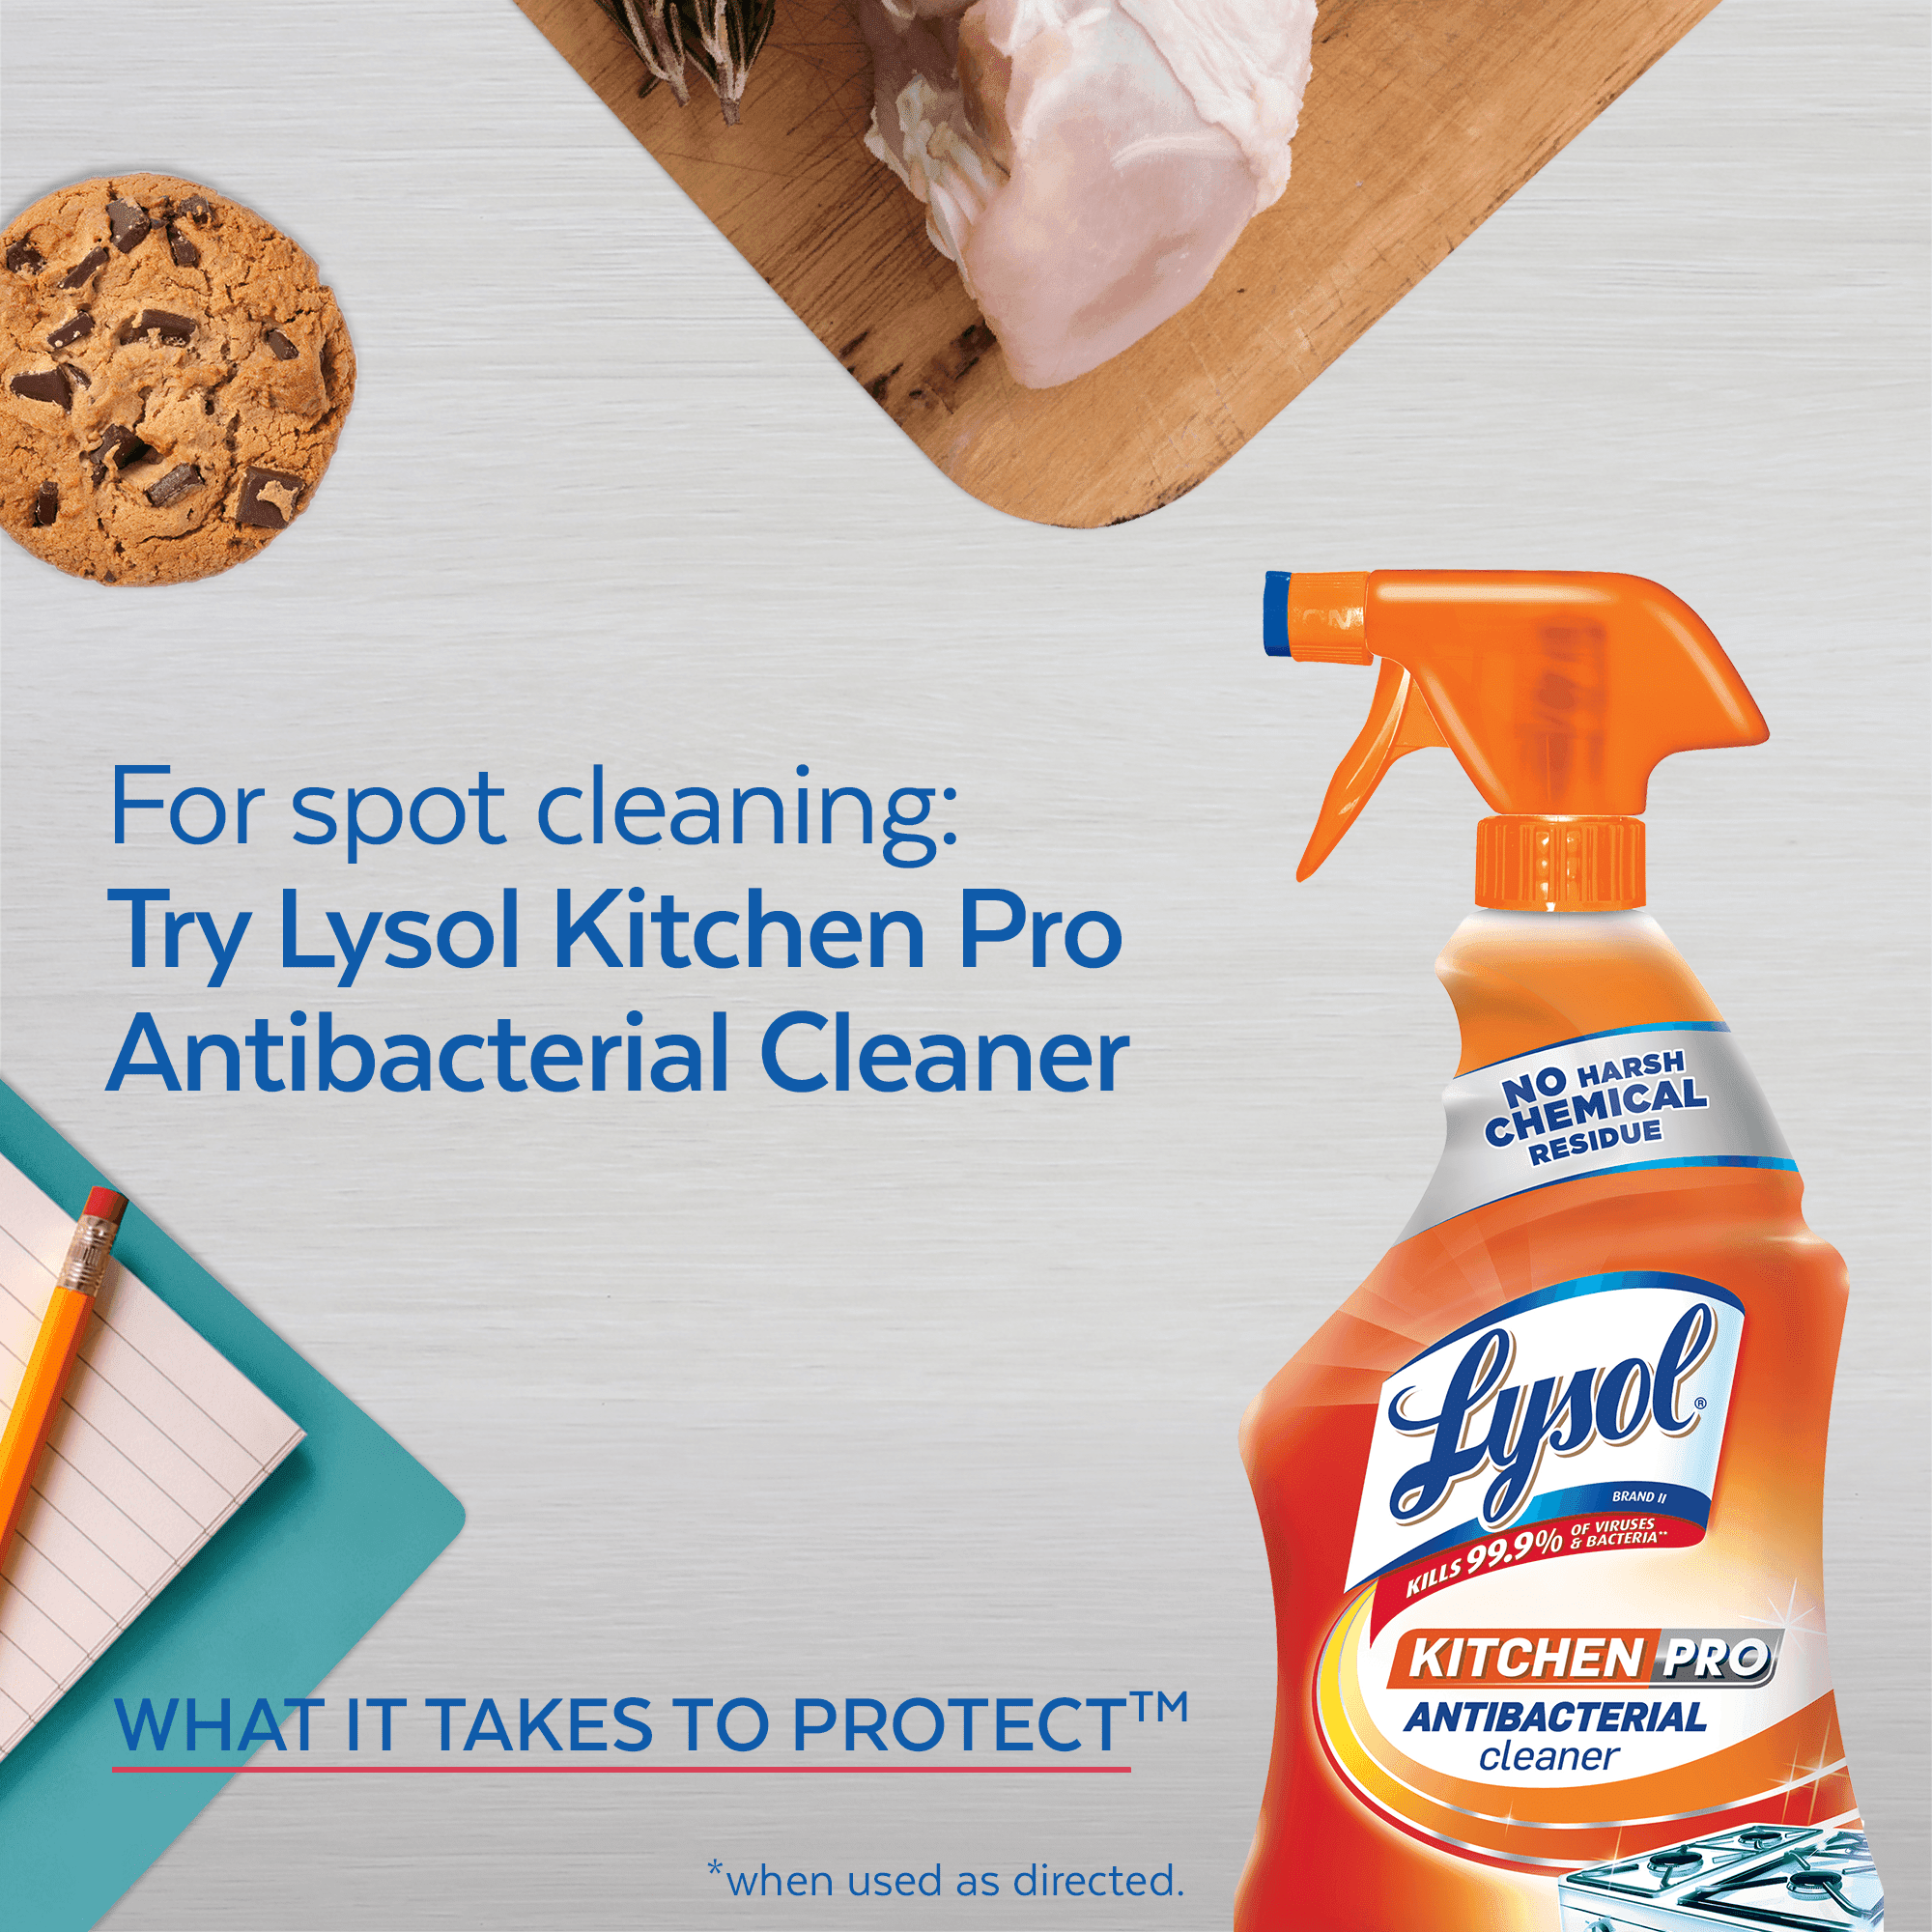 Lysol Kitchen Pro Antibacterial Disinfecting Wipes, 30ct, No Harsh ...